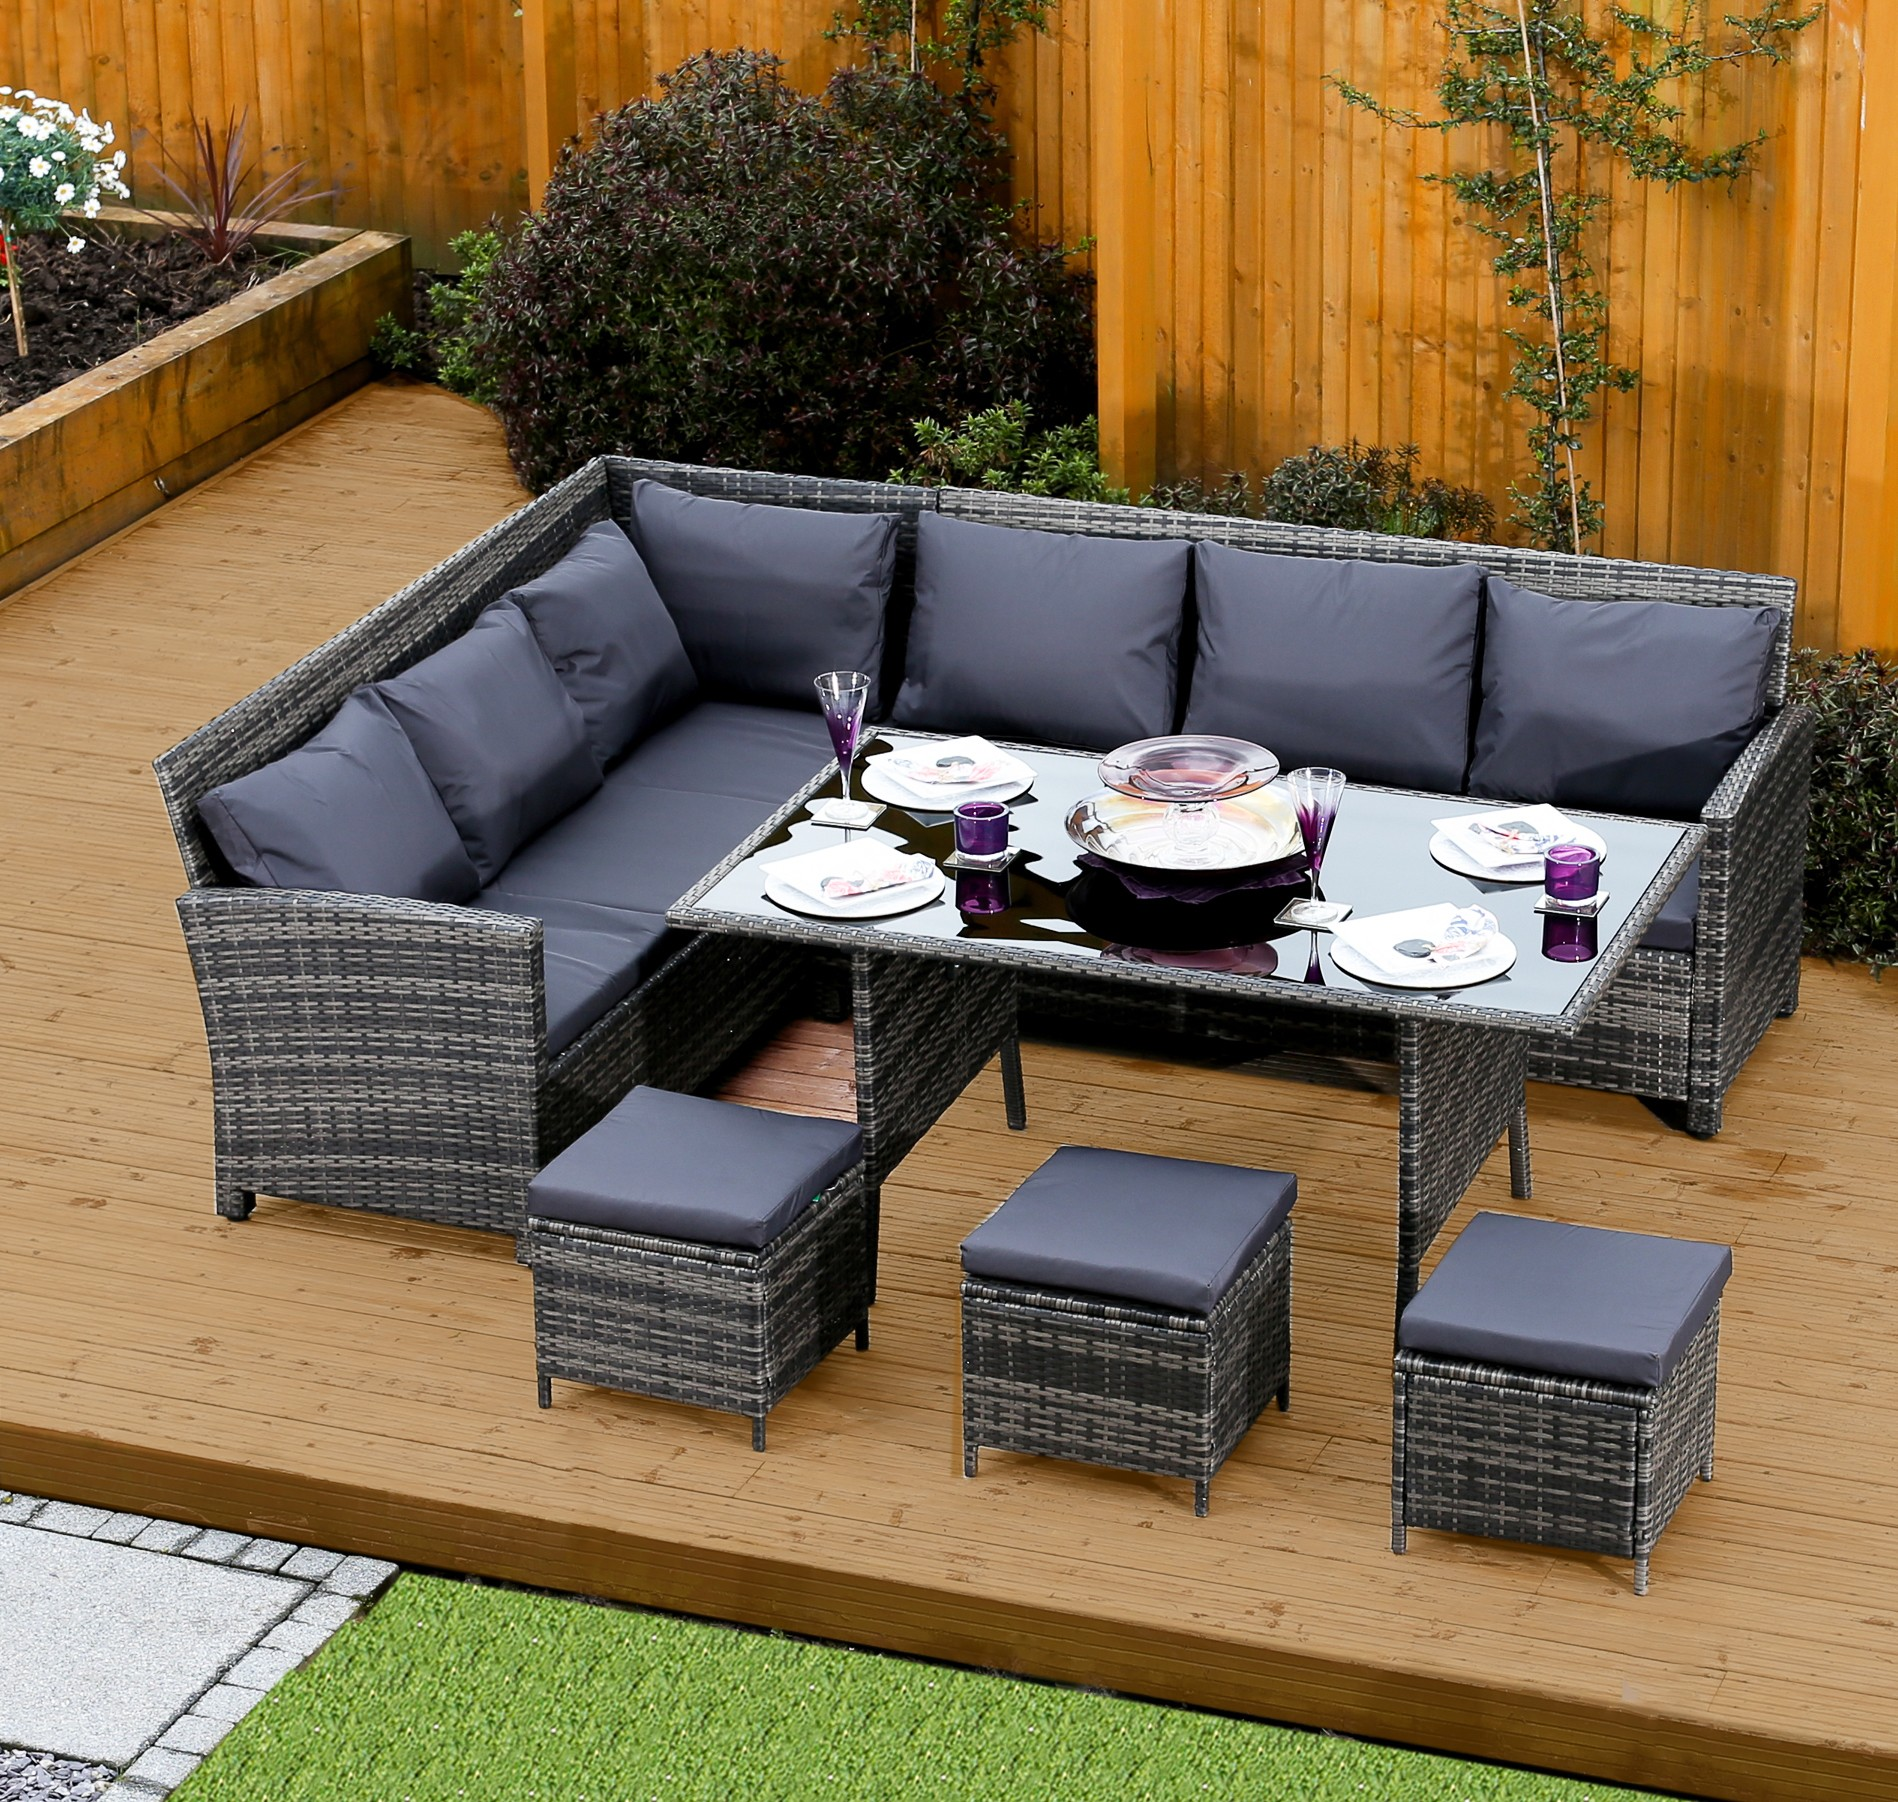 9 seater rattan corner garden sofa dining table set in dark mixed grey with dark cushions. Black Bedroom Furniture Sets. Home Design Ideas